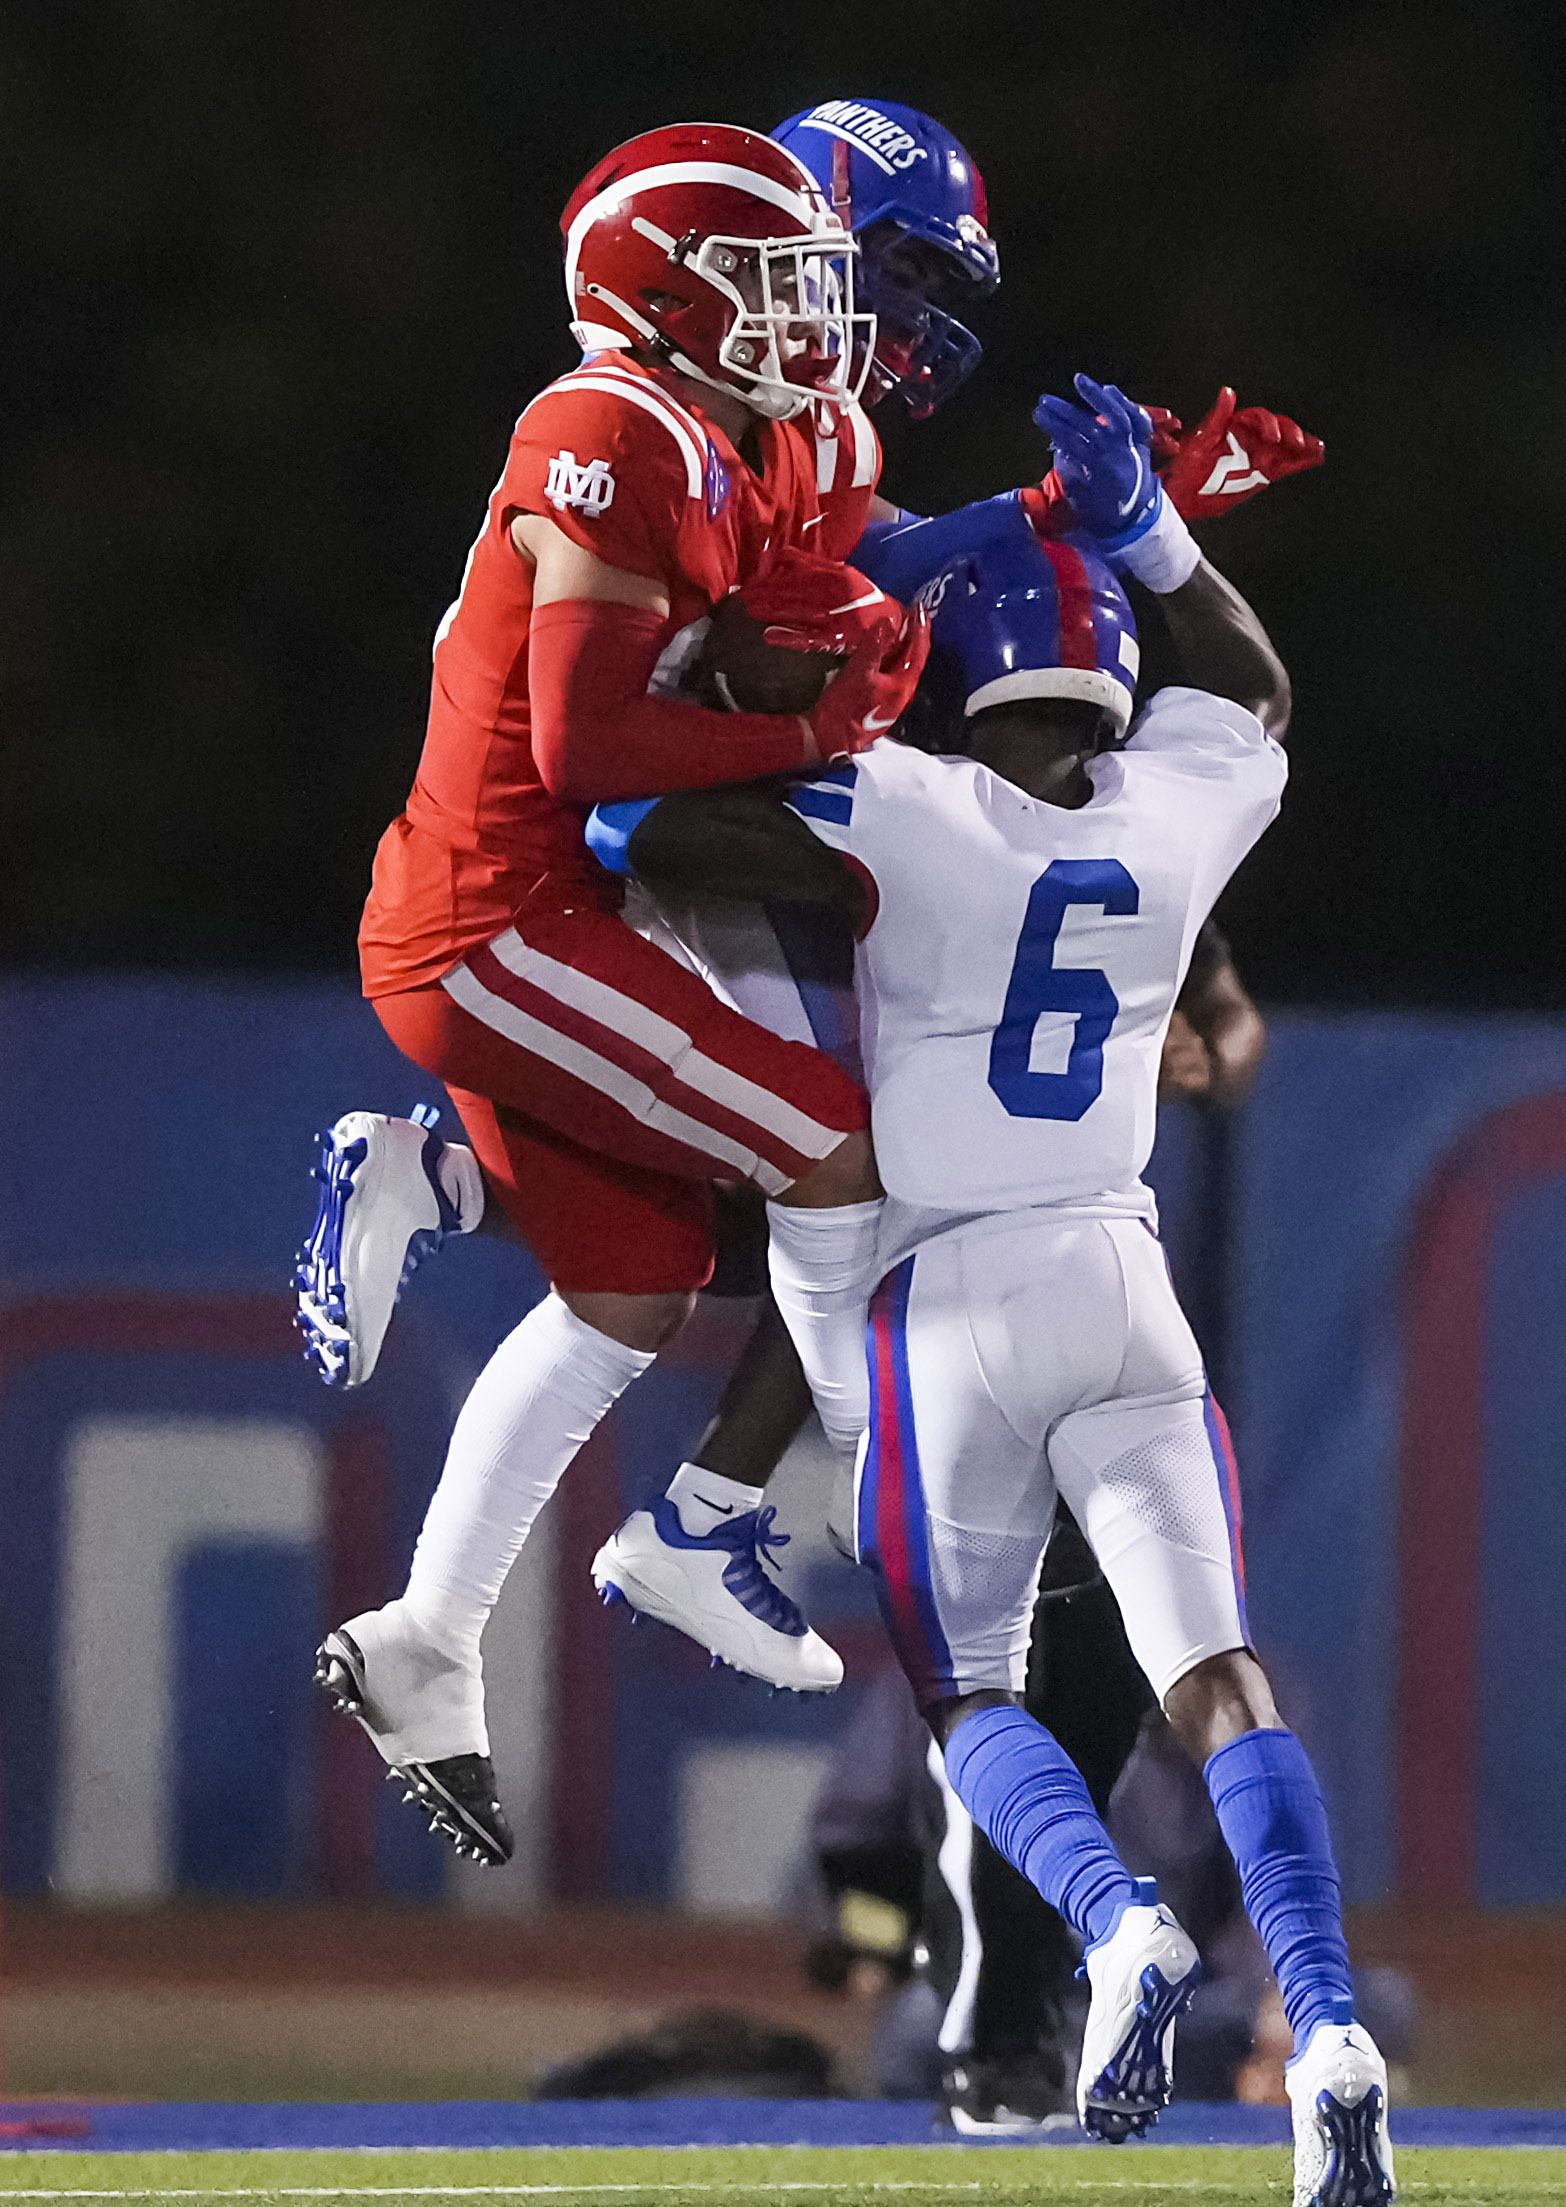 Mater Dei wide receiver Jack Ressler (88) catches a touchdown pass despite the defense from Duncanville defensive back Da'Myrion Colemann (6) and linebacker Vernon Grant (20) during the first half of a high school football game on Friday, Aug. 27, 2021, in Duncanville. (Smiley N. Pool/The Dallas Morning News)